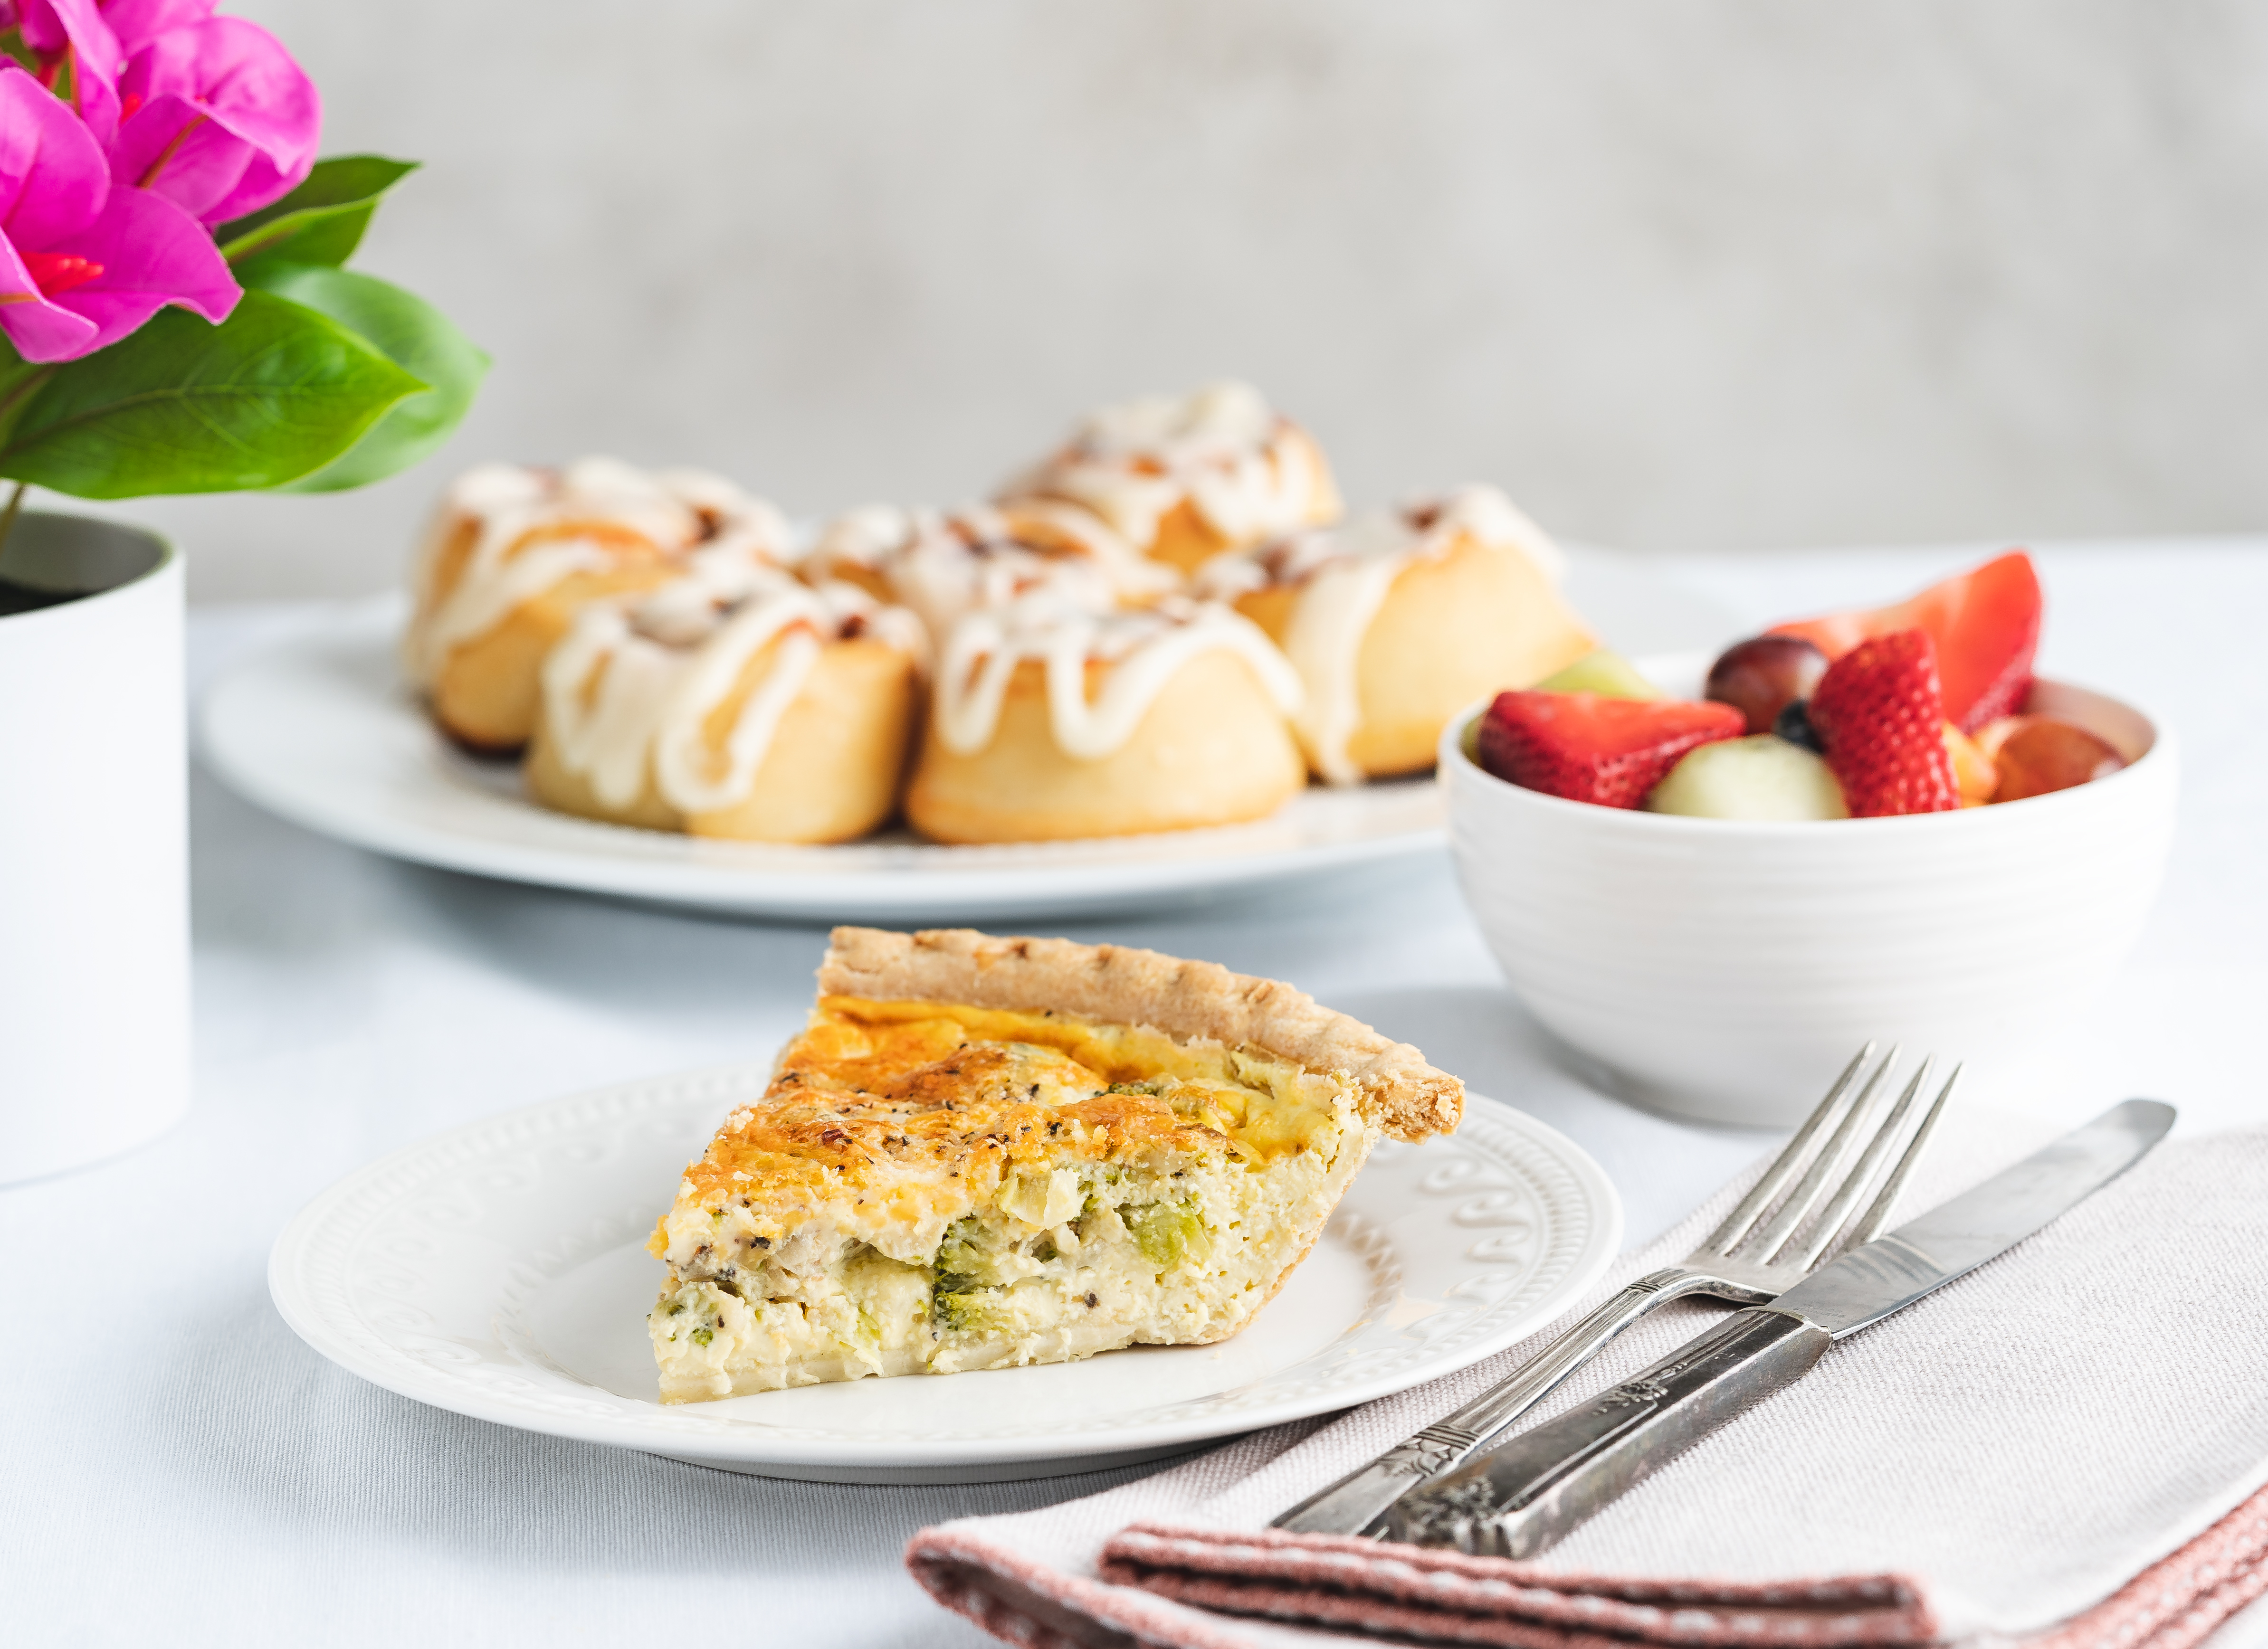 slice of quiche and a platter of cinnamon rolls